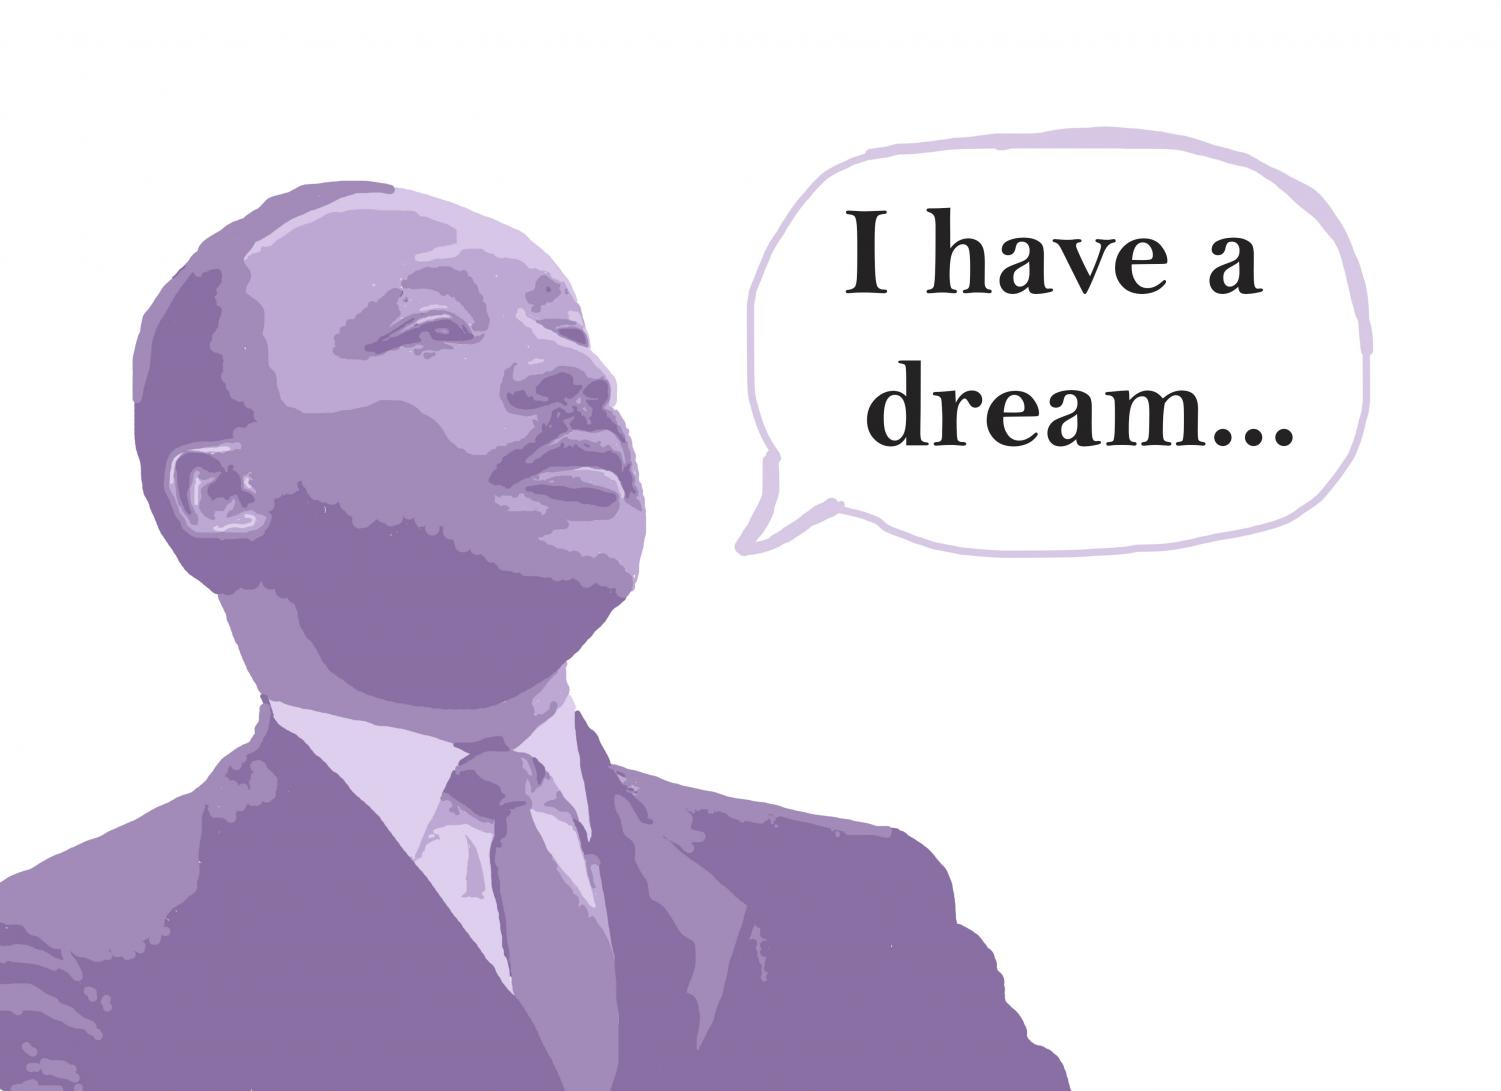 Photo illustration of Dr. Martin Luther King Jr. giving his